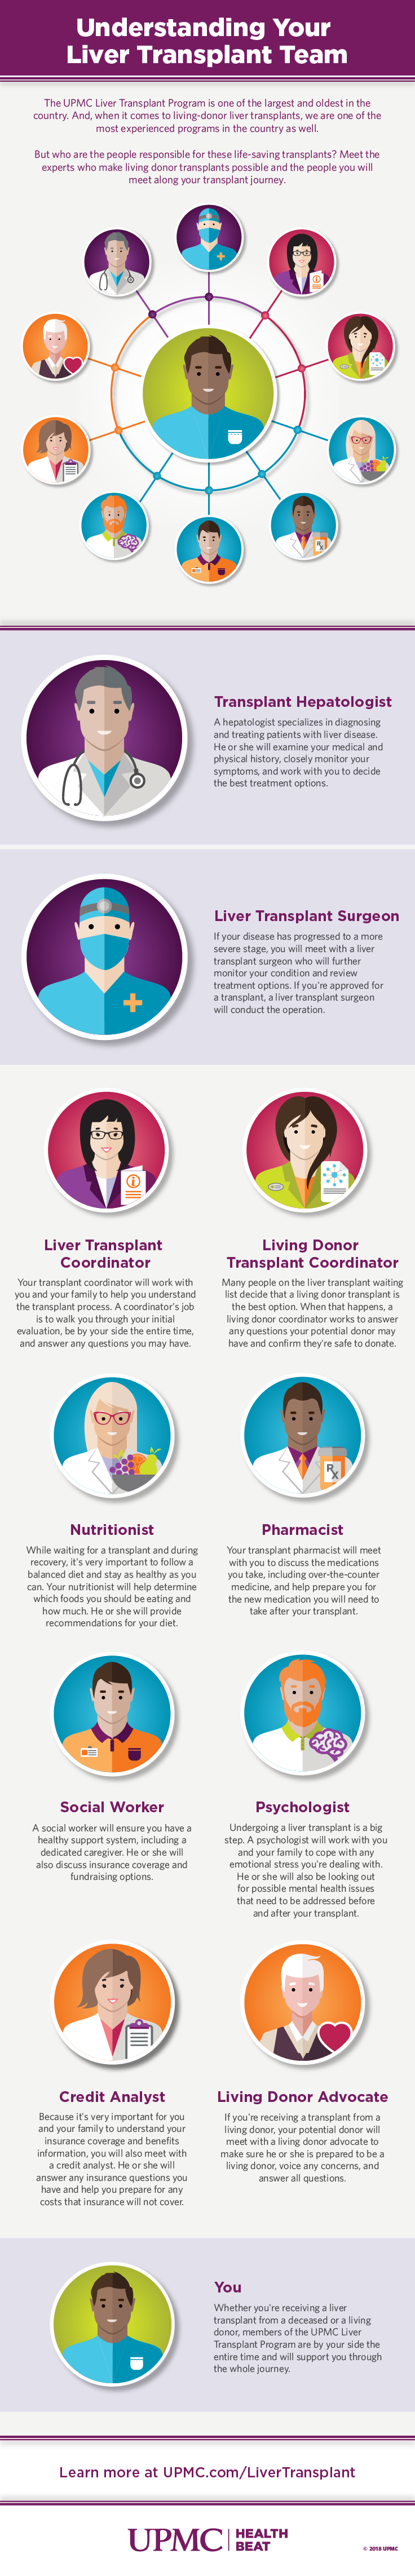 Meet the members of your liver transplant tea